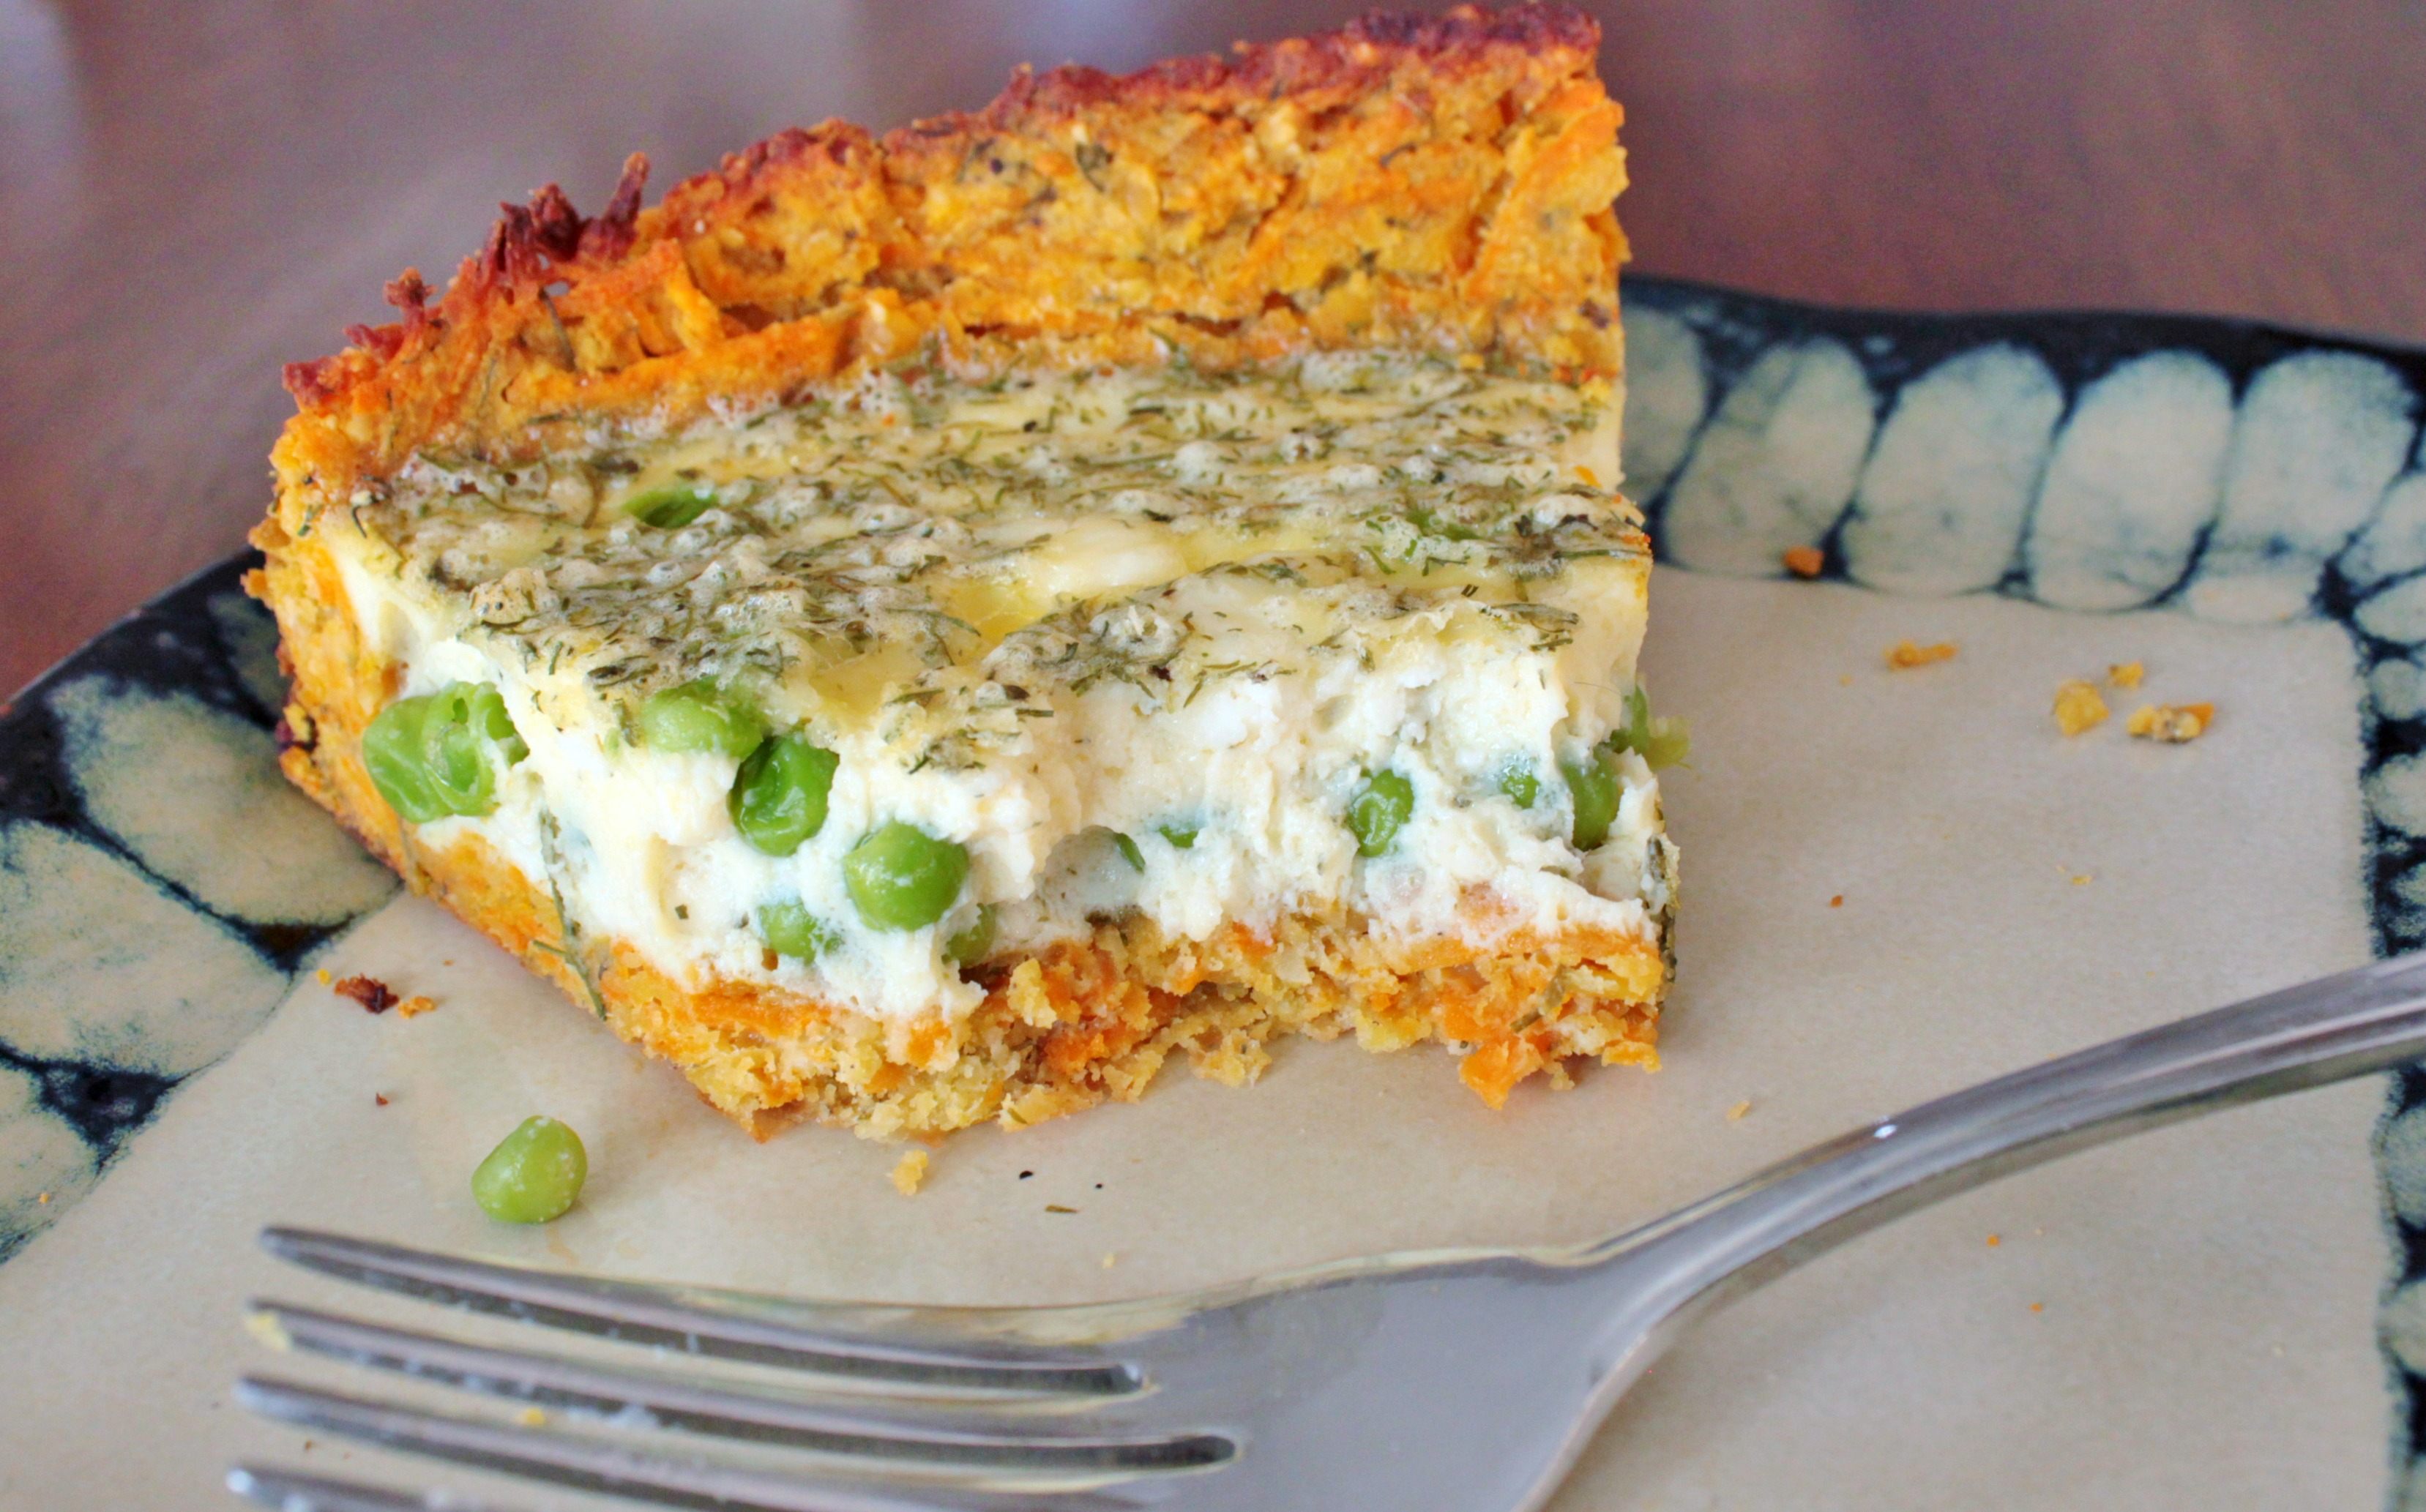 A delicious dill, pea, and feta quiche wrapped in a gluten free pastry made with red lentils, almonds, and grated sweet potato. #quiche #glutenfree #redlentilpastry